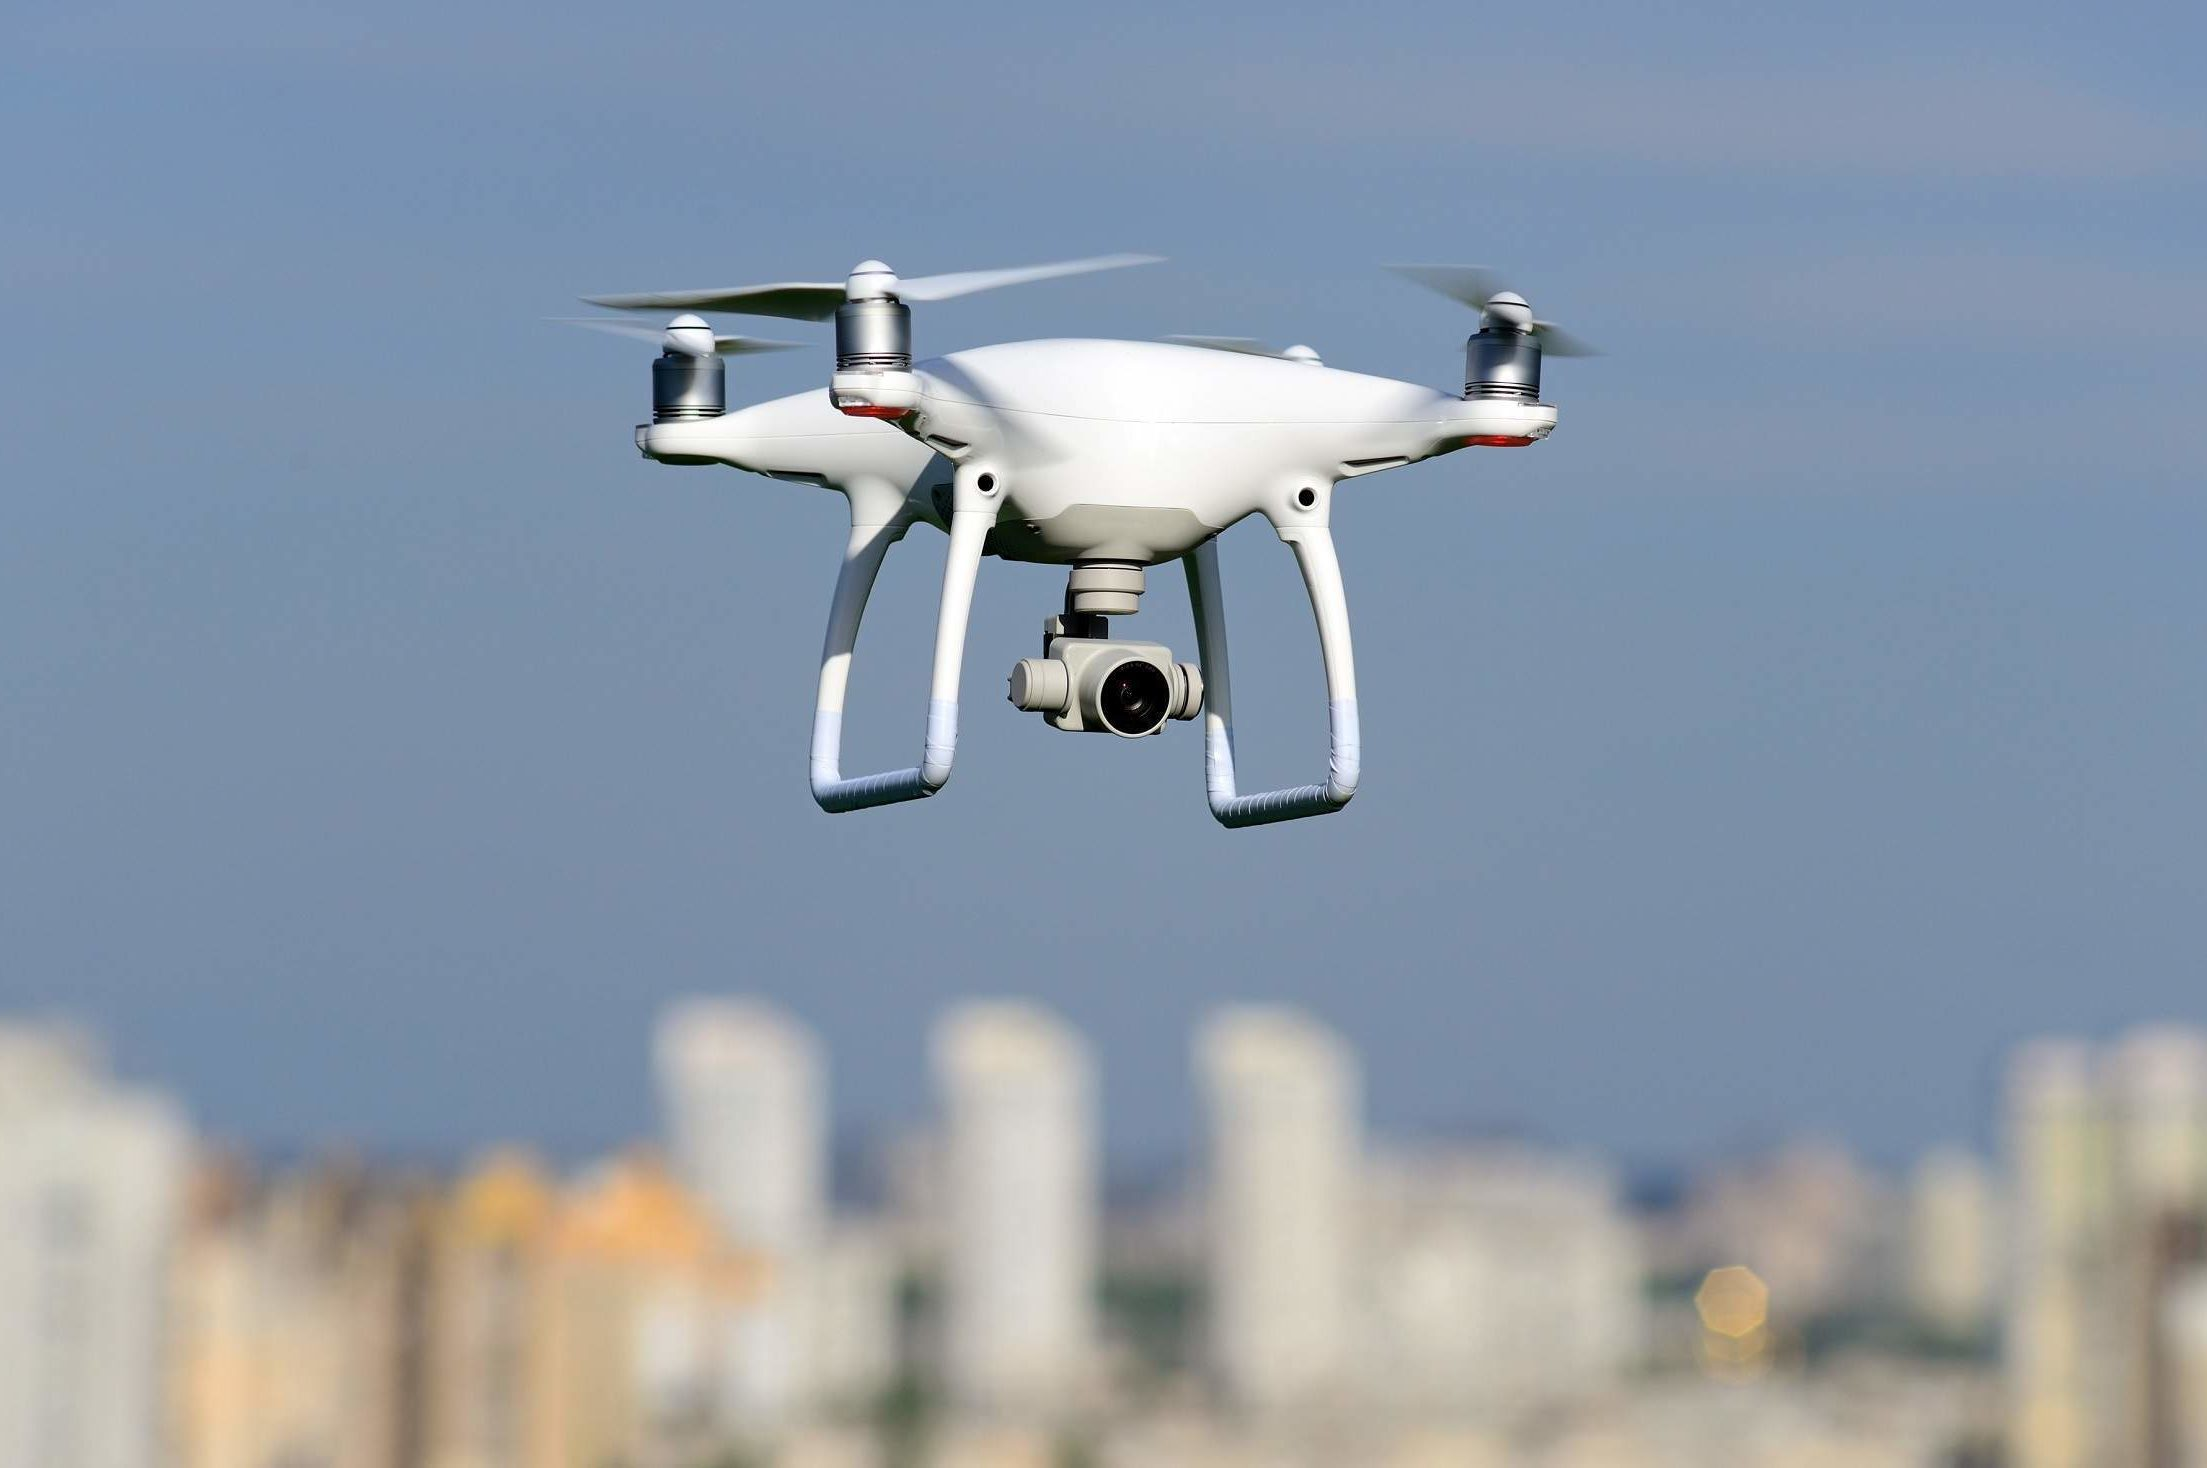 Drone industry welcomes first worldwide drone standards